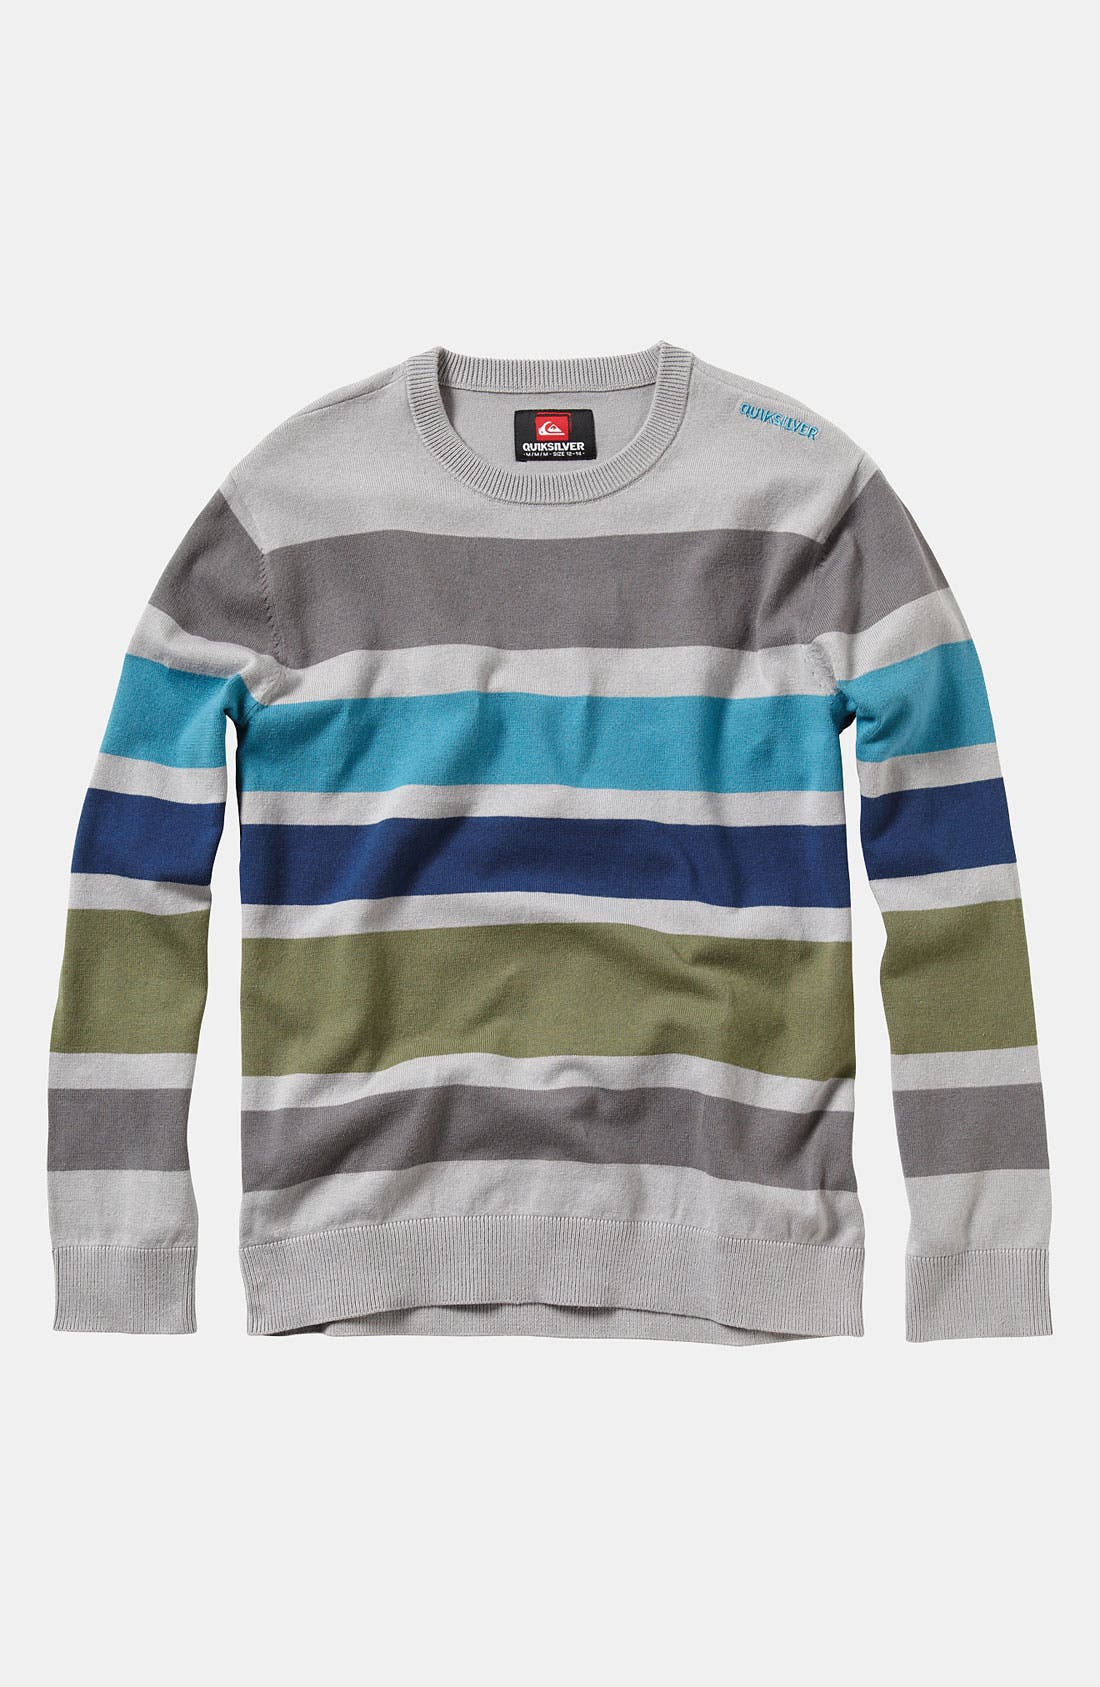 Alternate Image 1 Selected - Quiksilver 'Casting' Sweater (Little Boys)